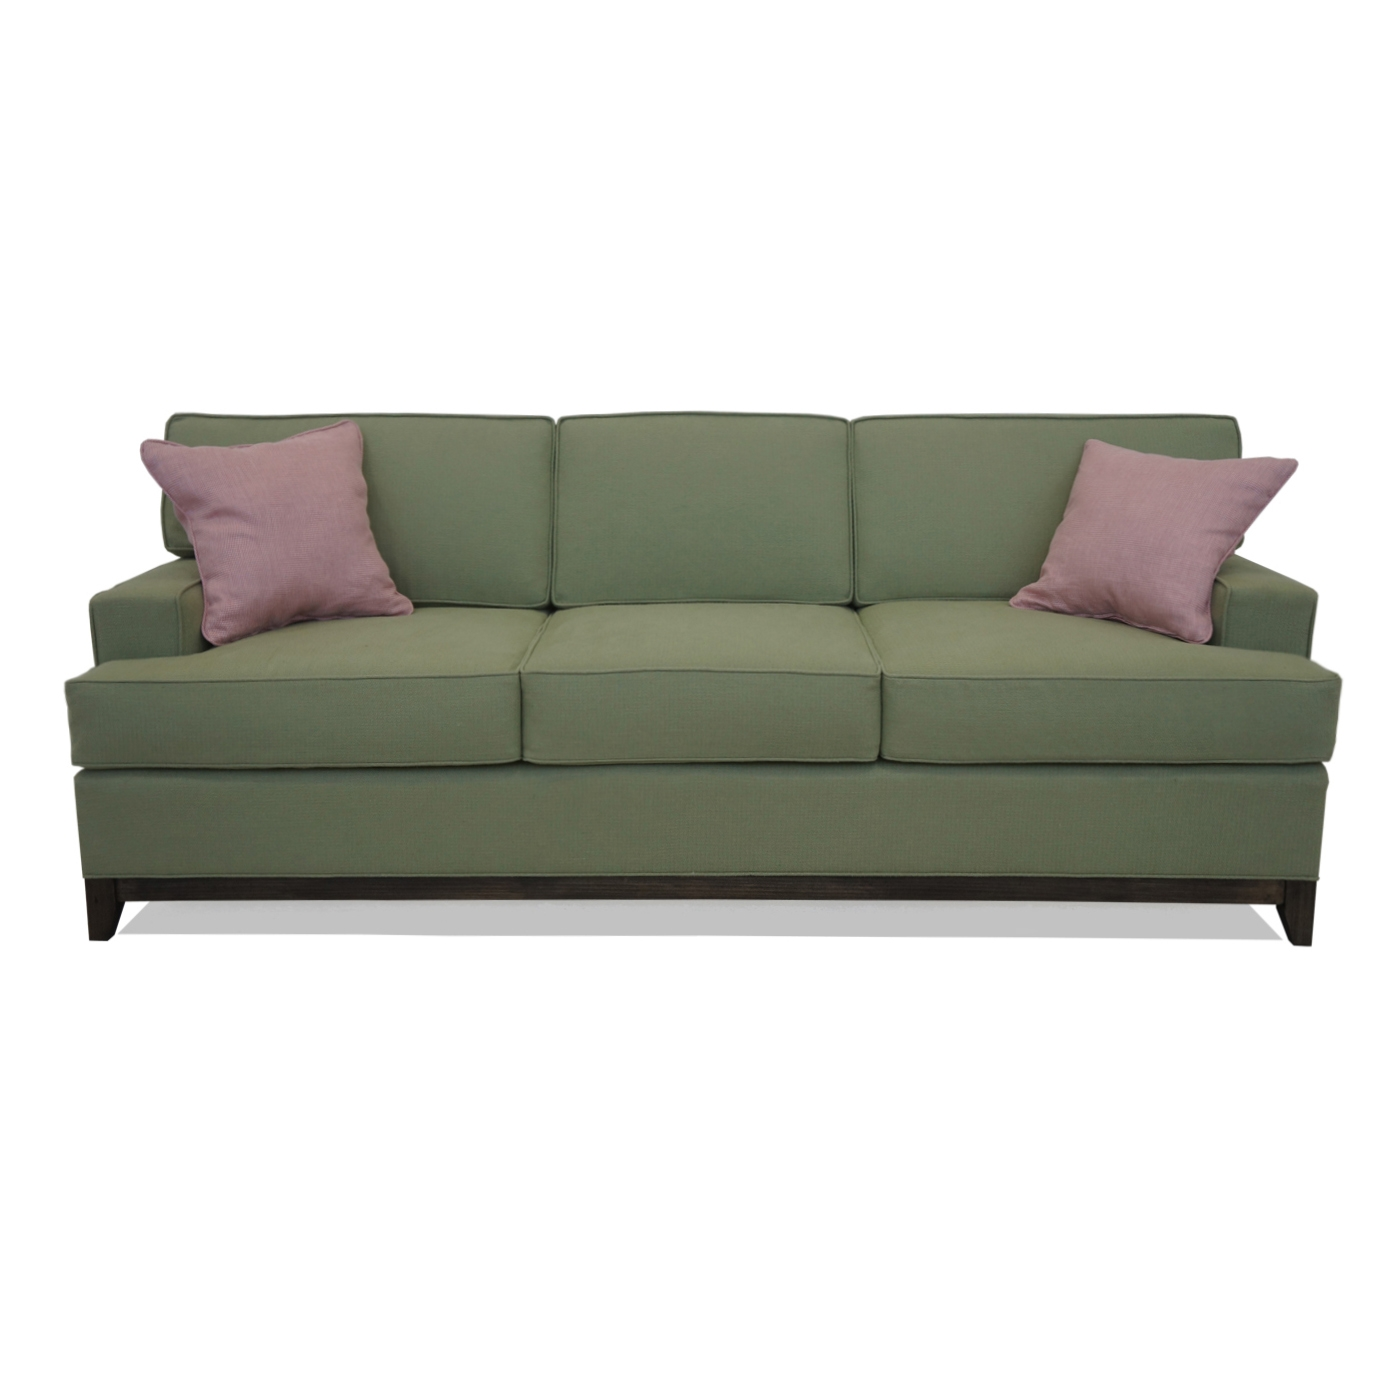 The Best Places To Shop For Eco Friendly Furniture Regarding Eco Friendly Sectional Sofa (Image 15 of 15)